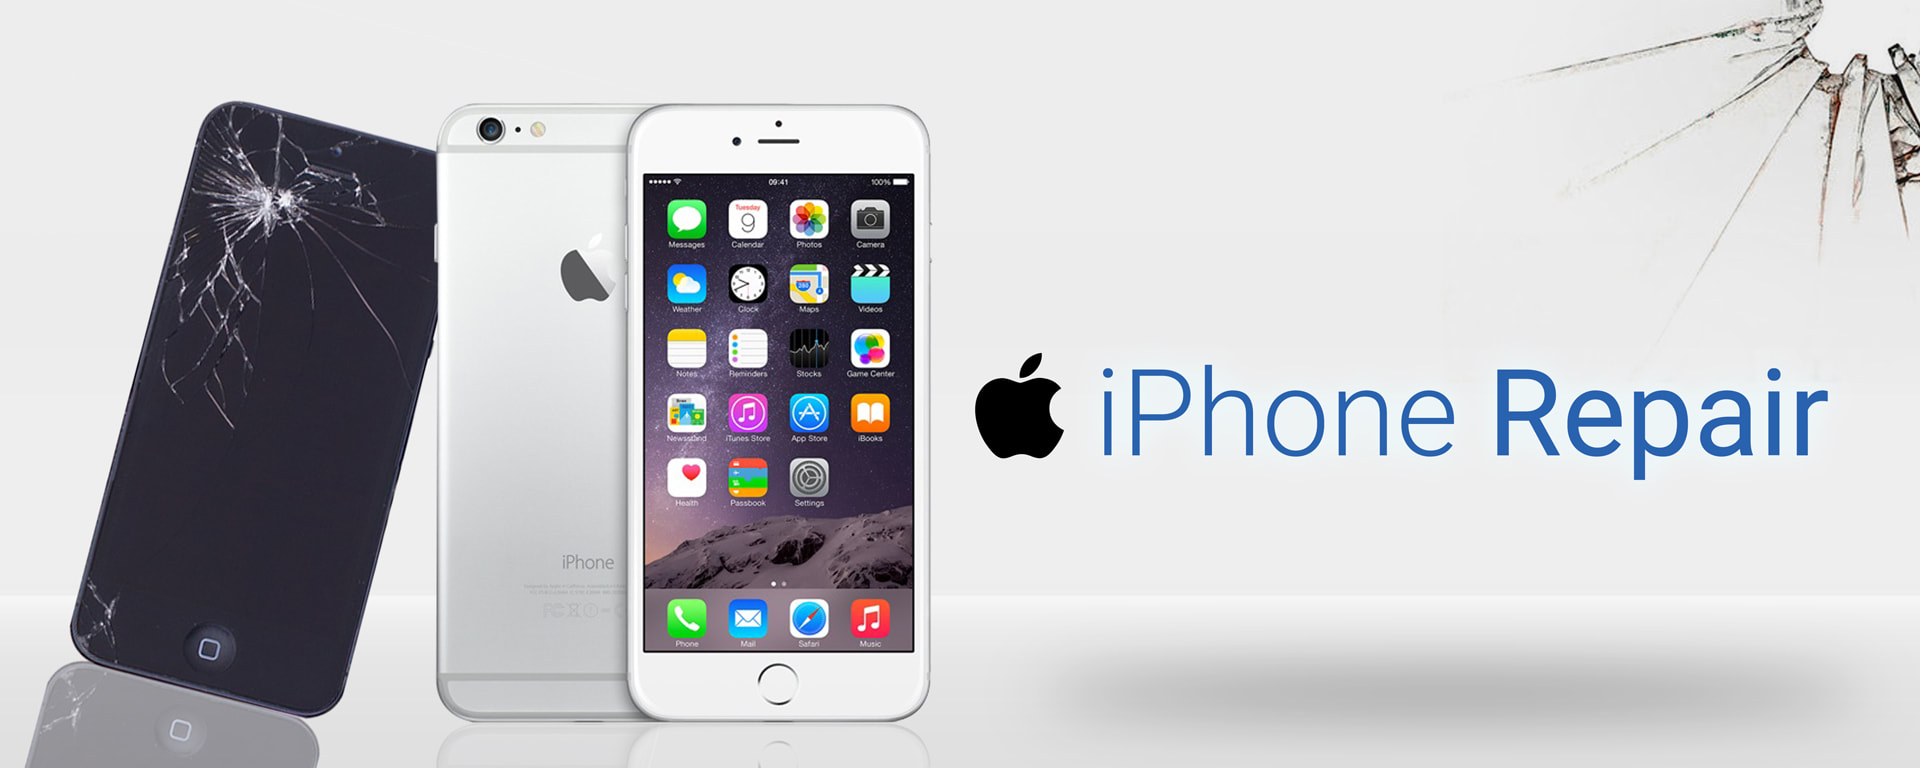 iphone-repair-banner-left_1_orig